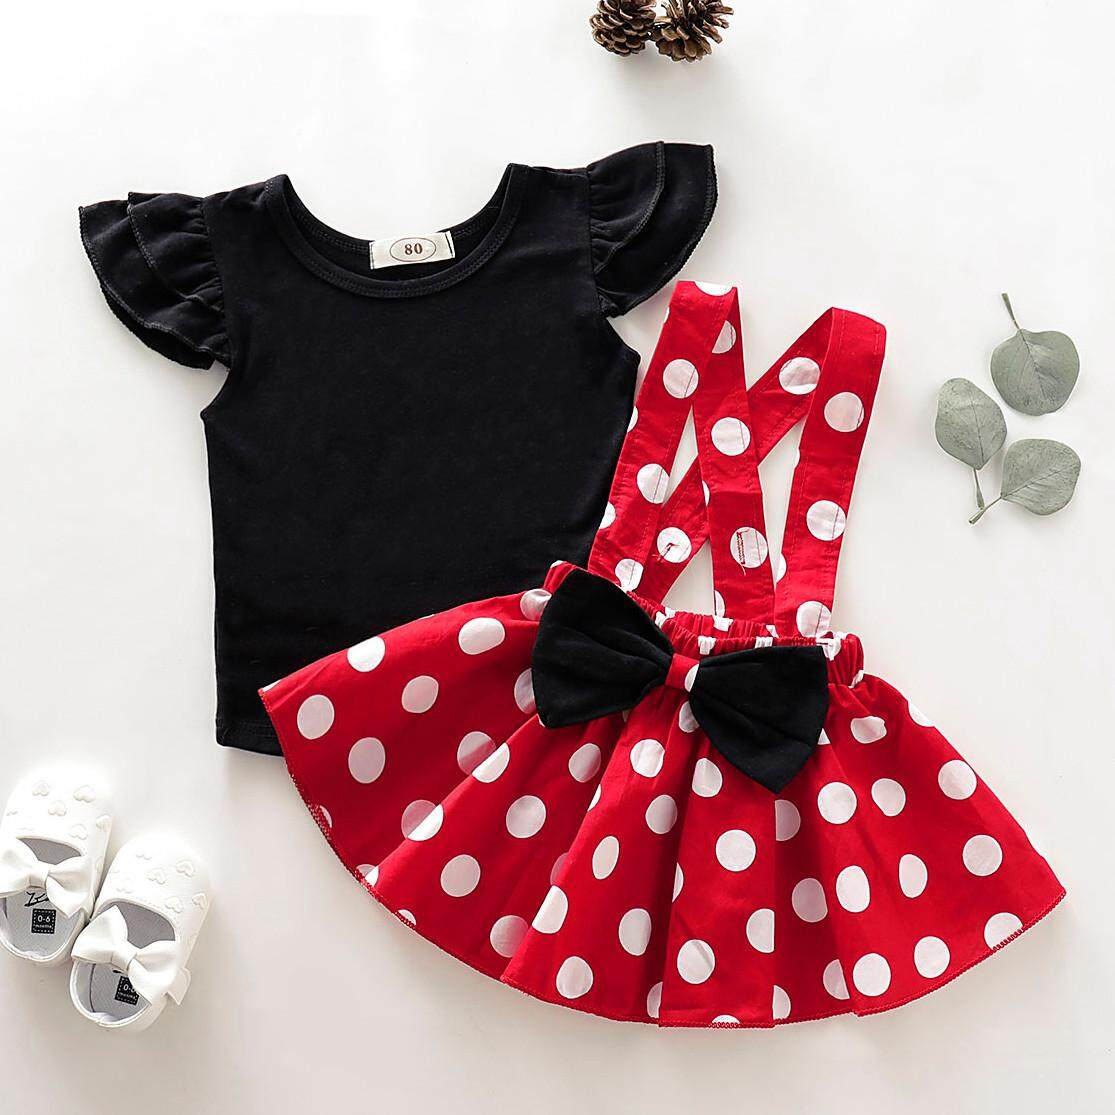 eb3297e90f2a3 (TWINKLE) Infant Kids Baby Girls Soild T-Shirt Top+Dot Print Bow Skirt  Outfits Set Clothes